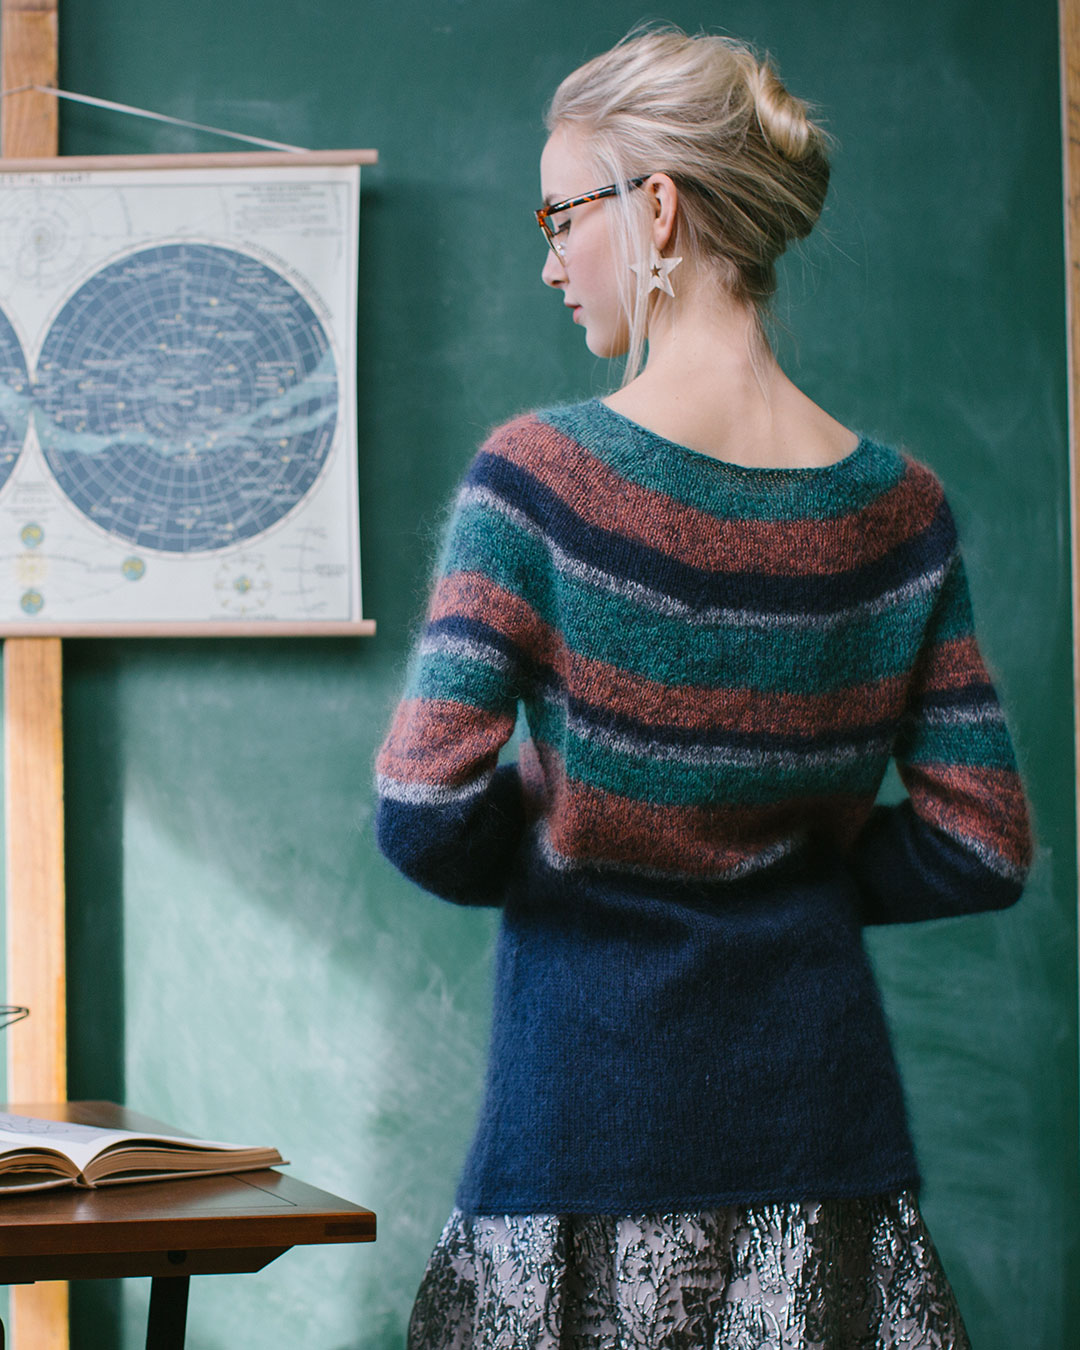 The Saturn's Rings Pullover is worked in the round, from the top down, and seamlessly.